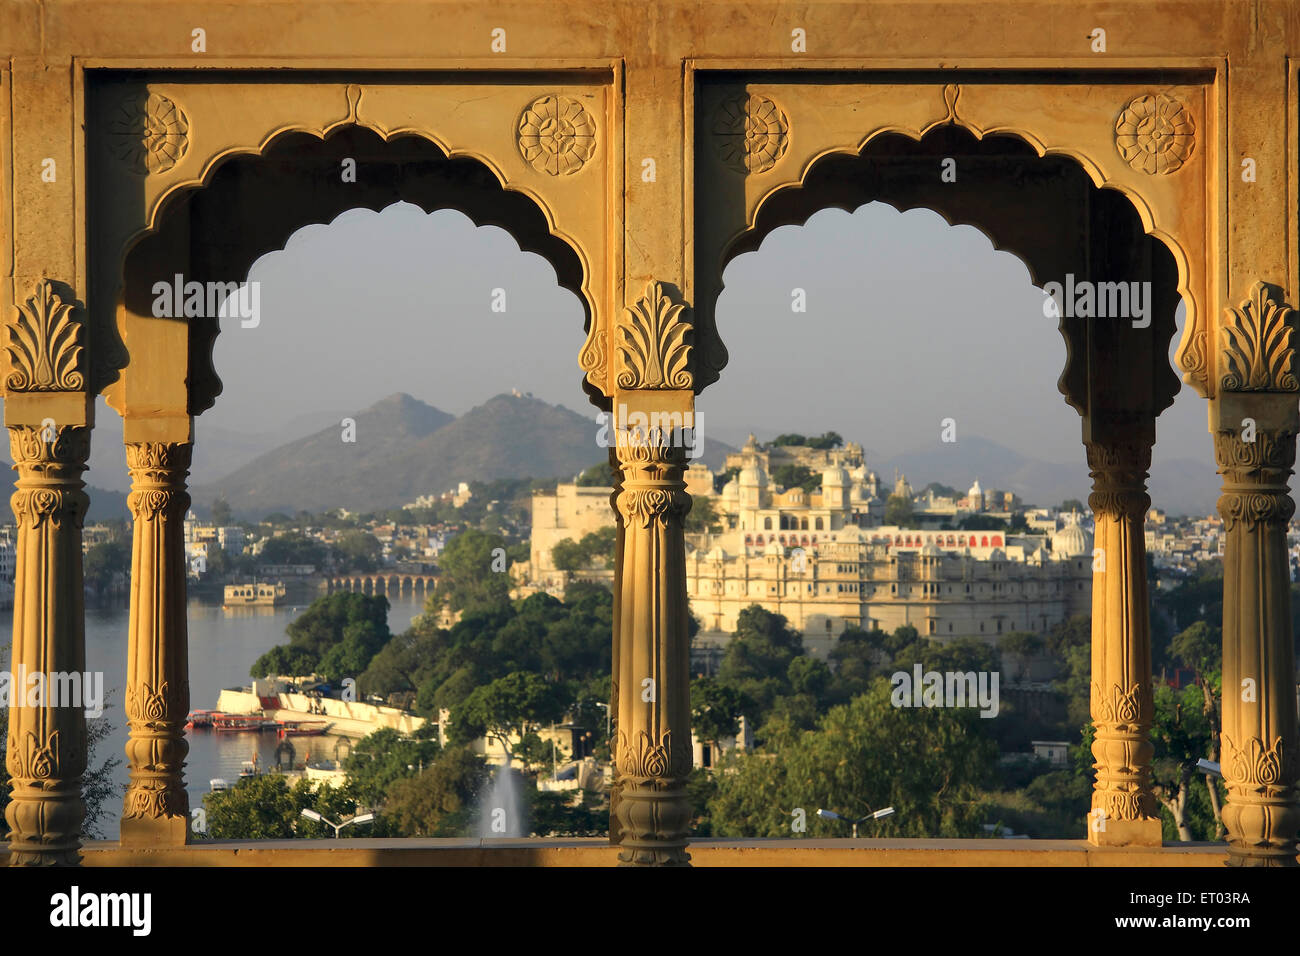 L'architecture de Rajasthani ; ; ; Inde Rajasthan Udaipur Photo Stock